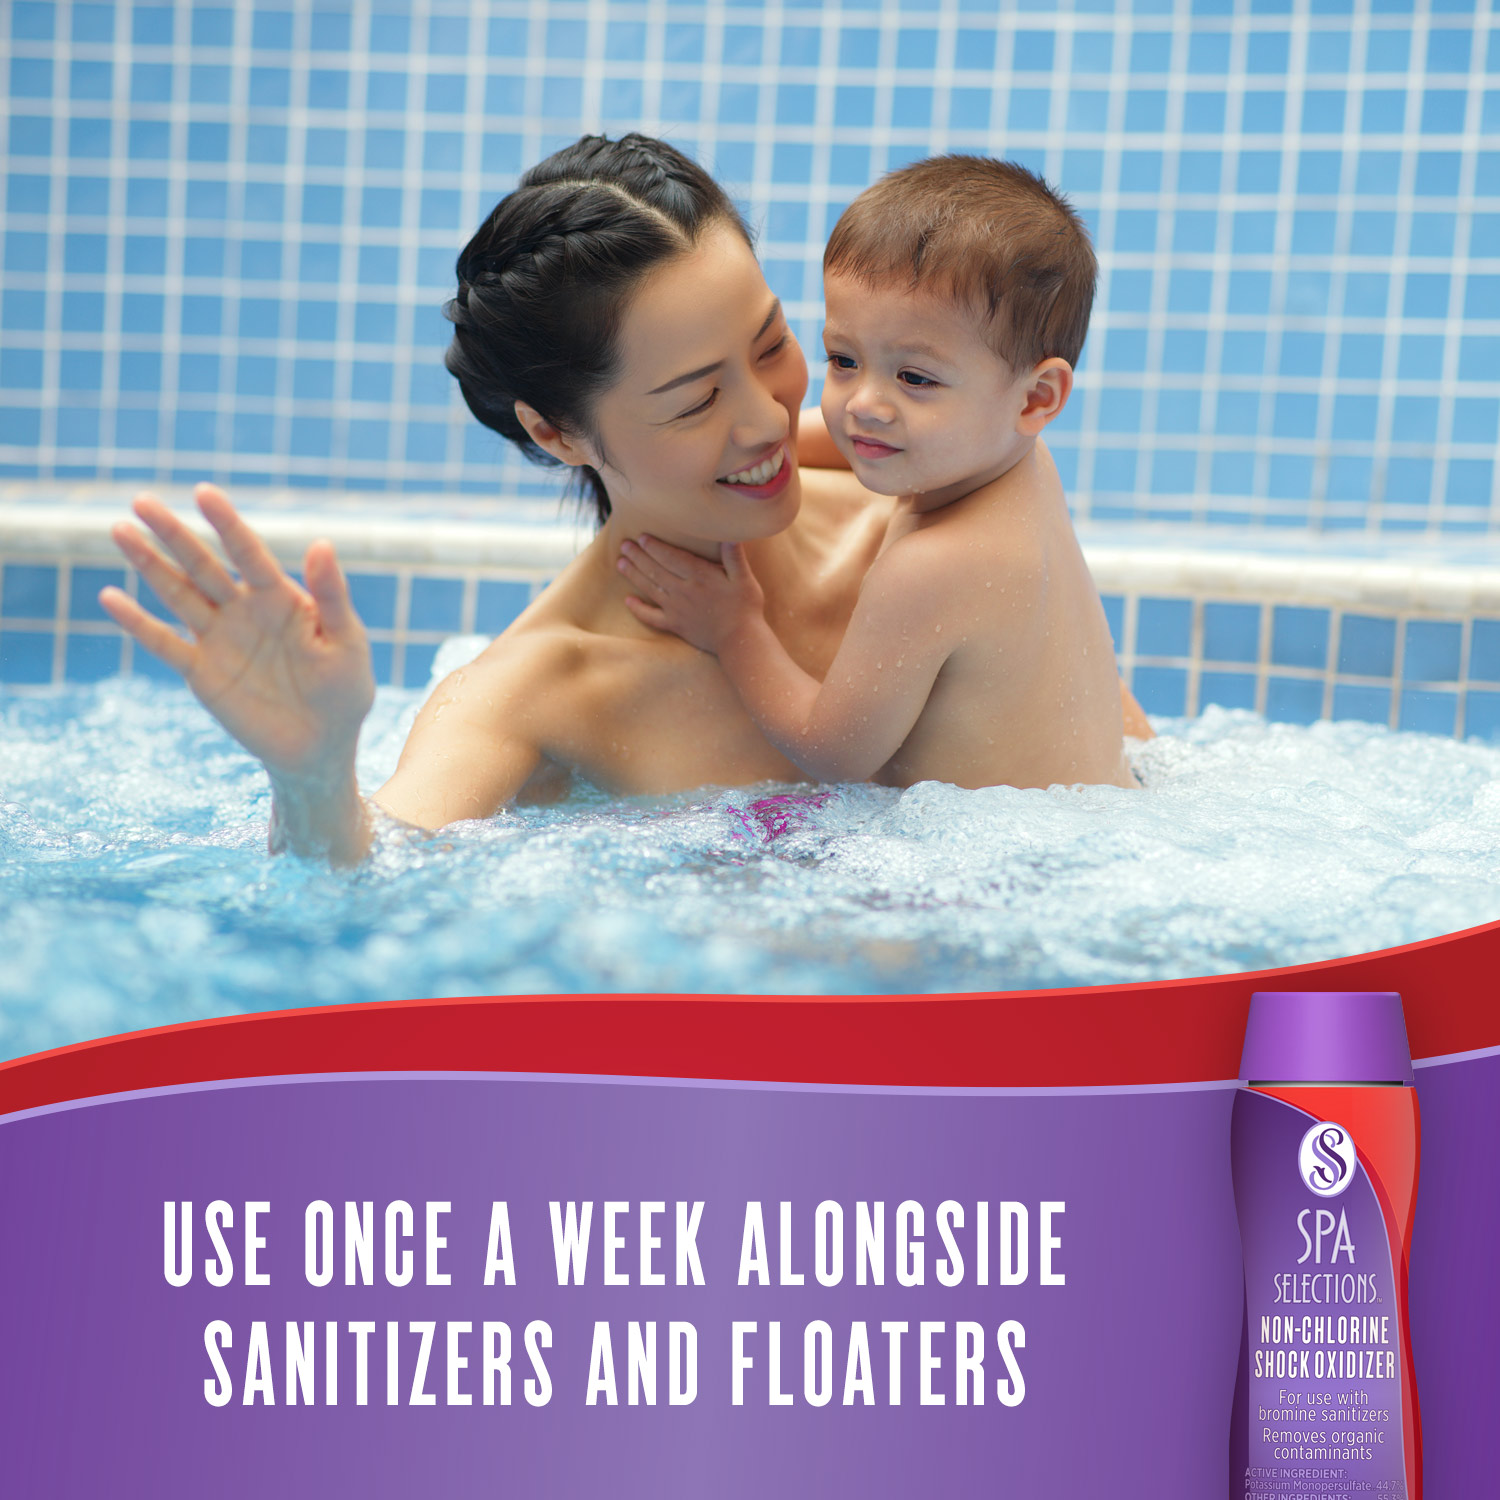 Mother holding young child enjoying a hot tub. Use Spa Selections non-chlorine shock oxidizer once a week alongside sanitizer and floaters.